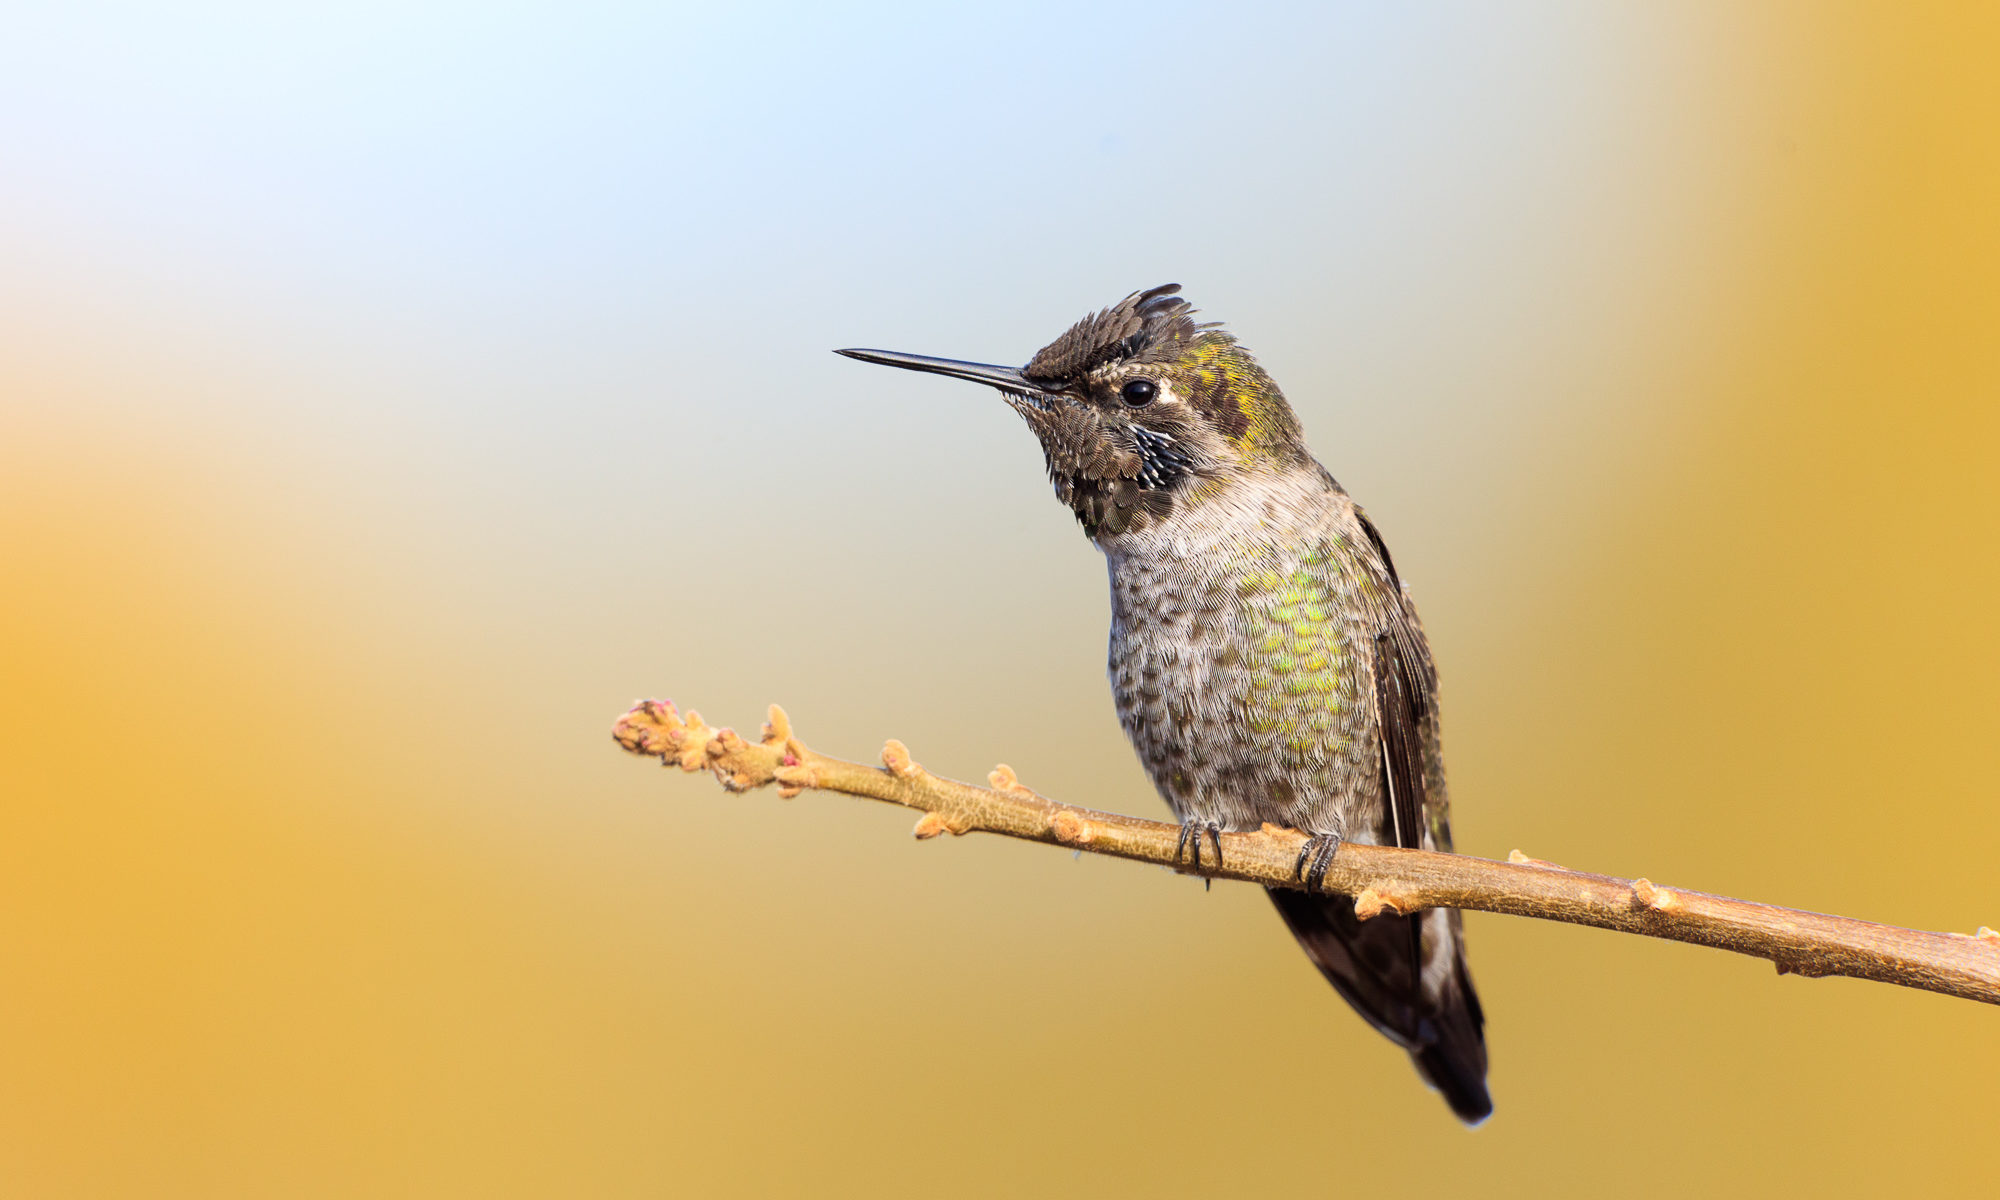 An anna's hummingbird perches on a thin branch, Belmont, CA